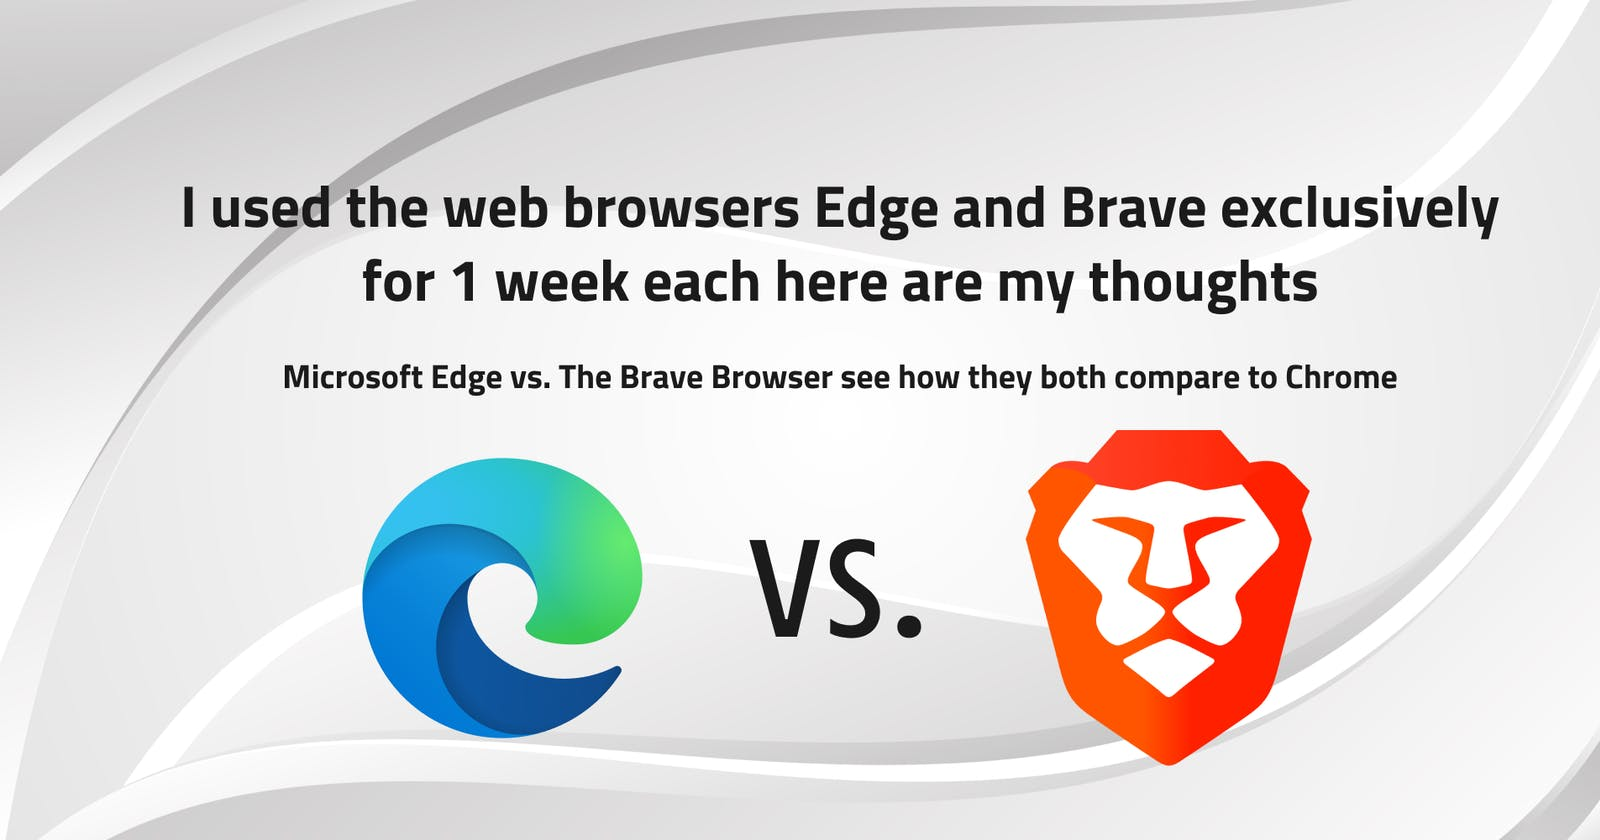 I used the web browsers Edge and Brave exclusively for 1 week each here are my thoughts